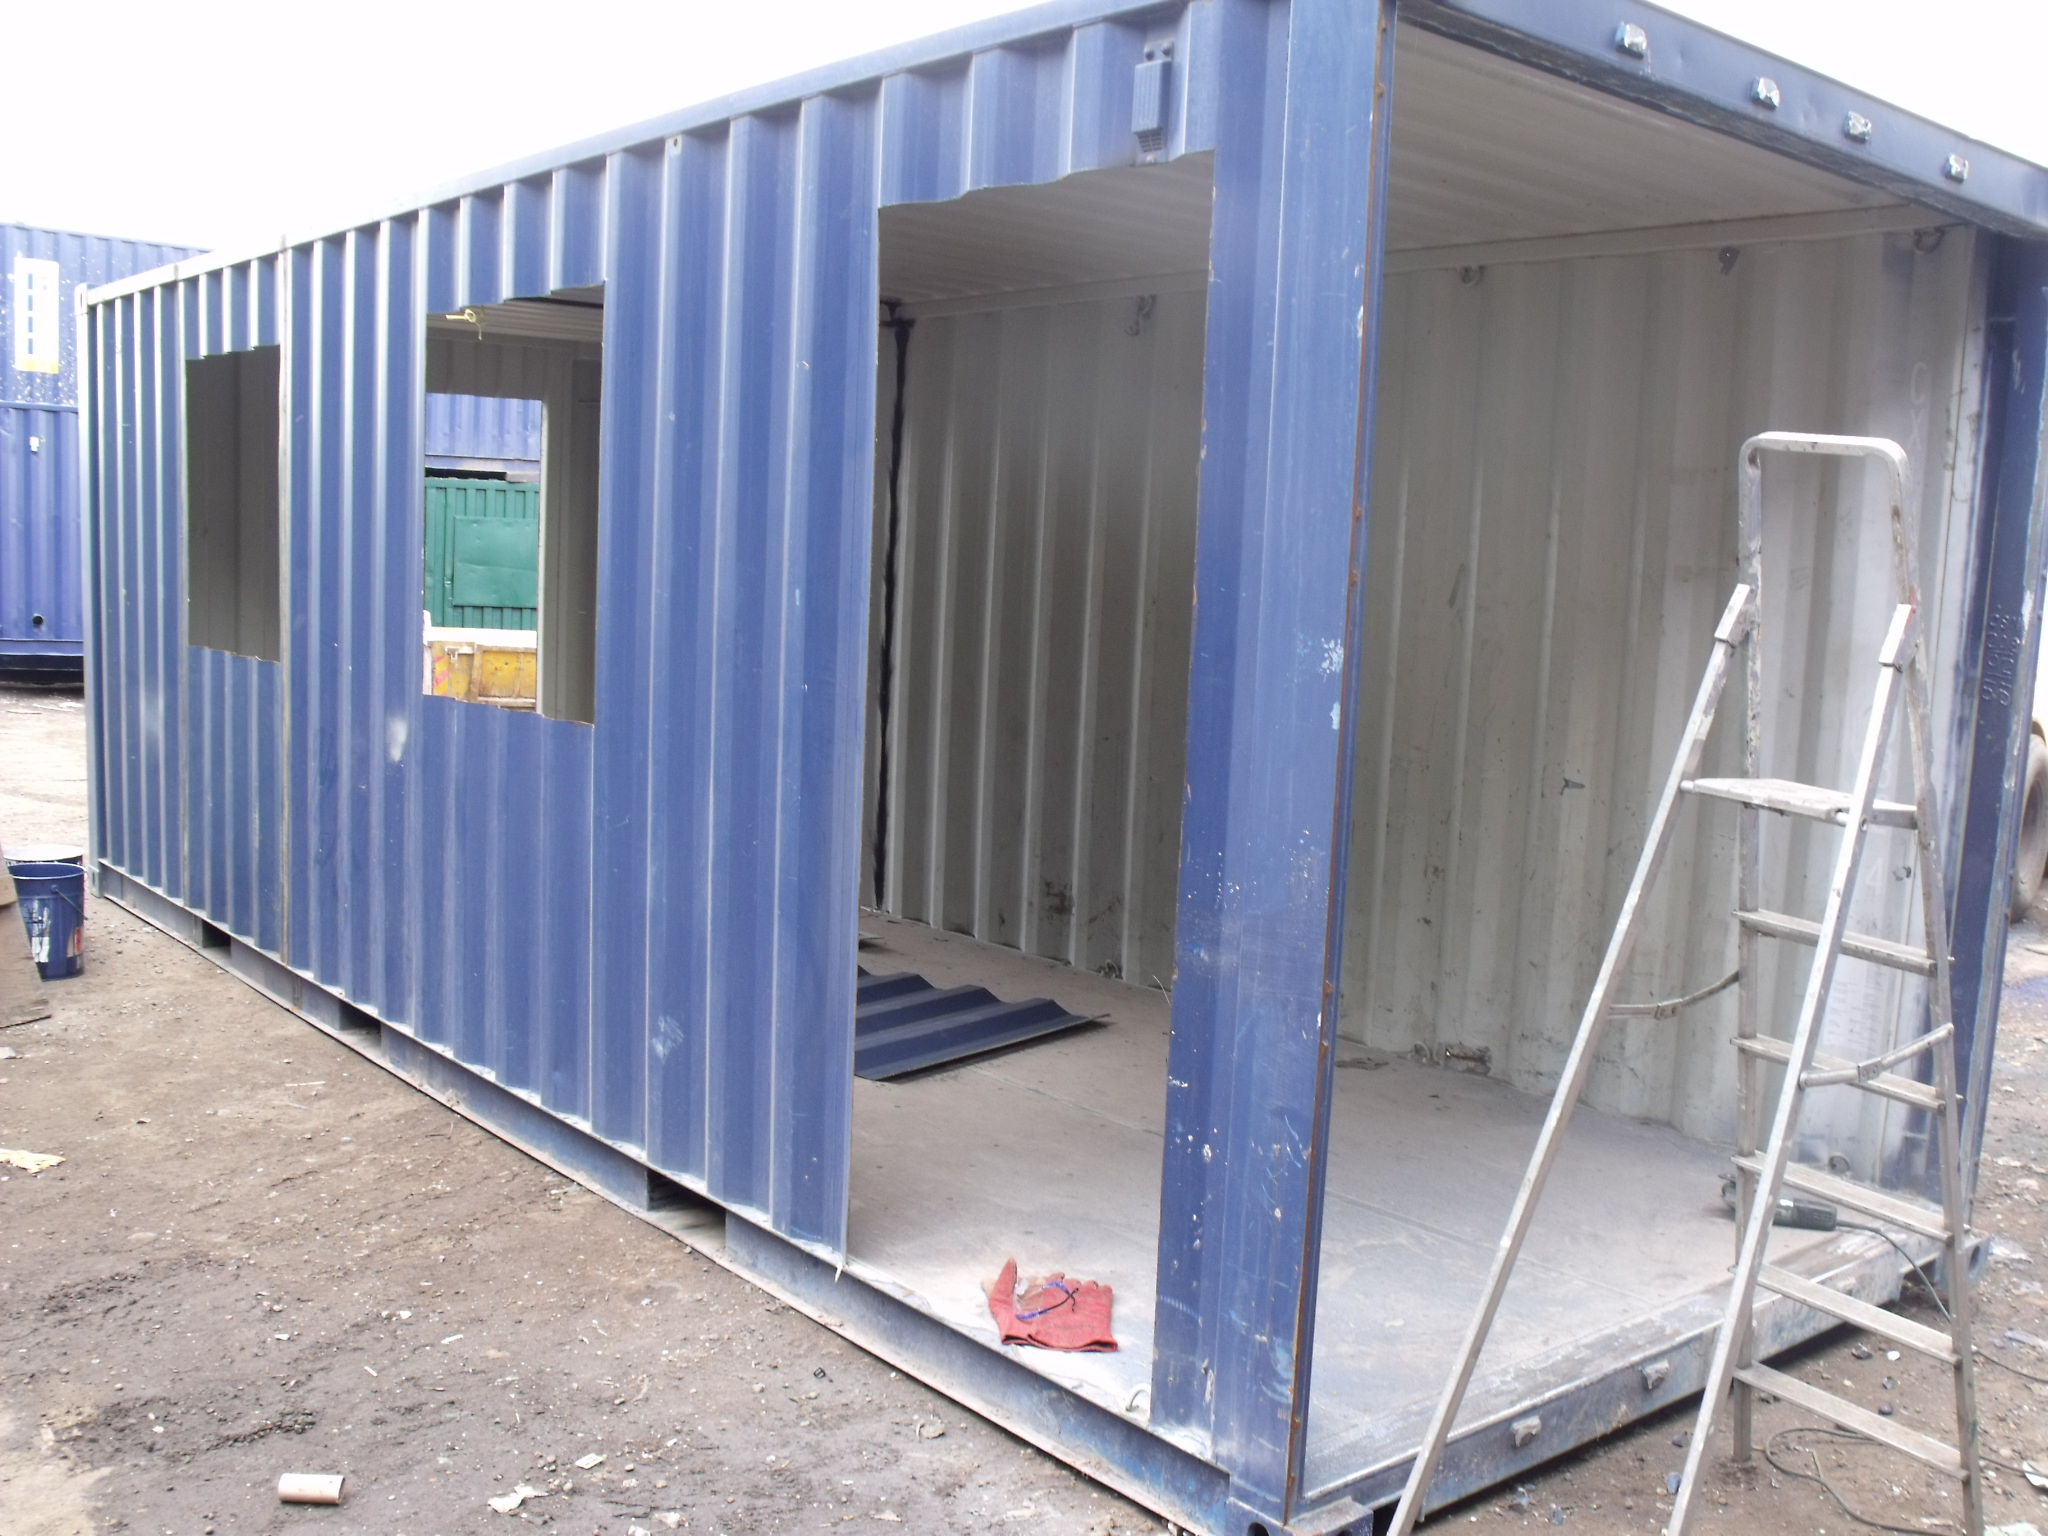 Pop-up shops and bars, container conversions - from ...